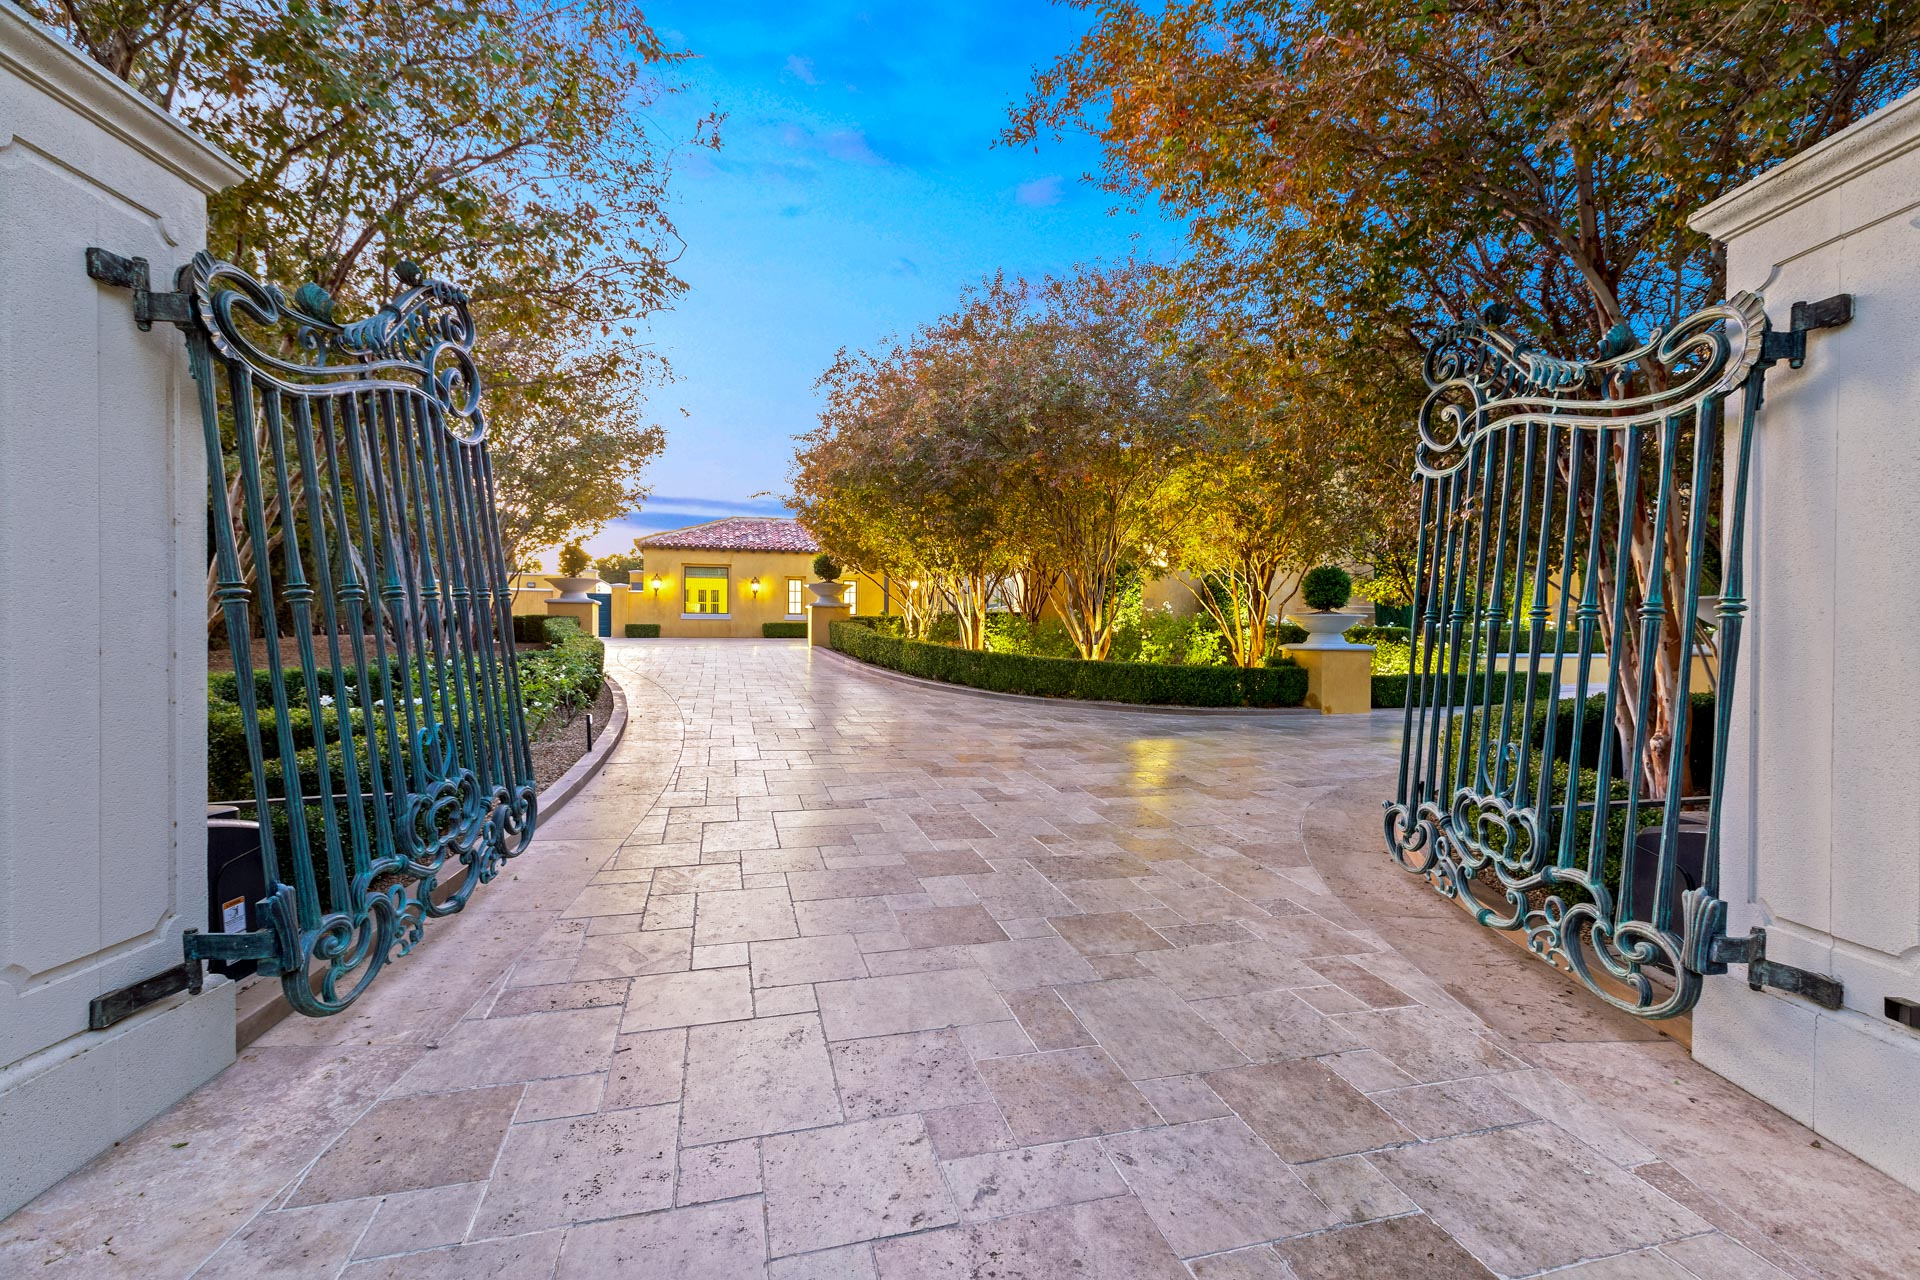 1717 ENCLAVE Court, Las Vegas, Nevada 89134 - $25,000,000 home for sale, house images, photos and pics gallery